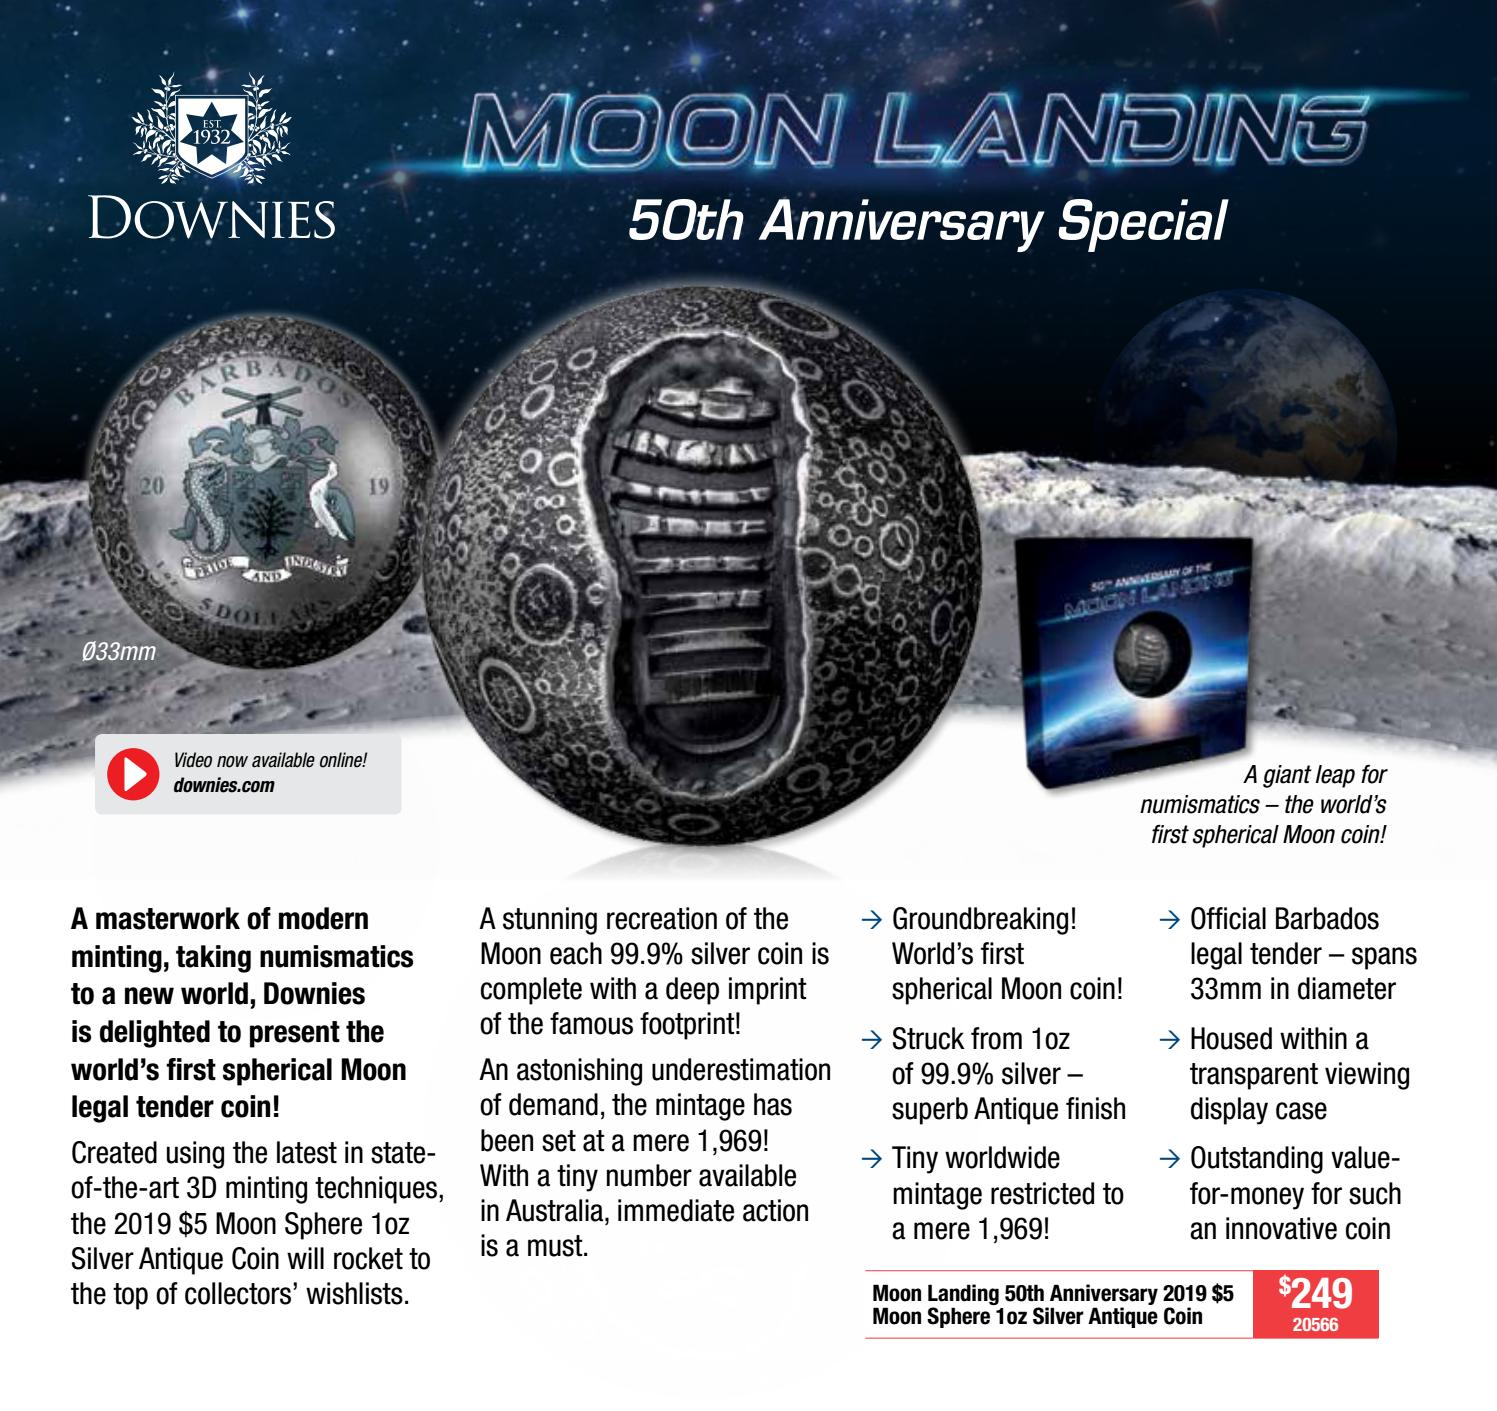 Australia 2019 6-Coin UNC Year Set 50th Anniversary Moon Landing Special 5c $1